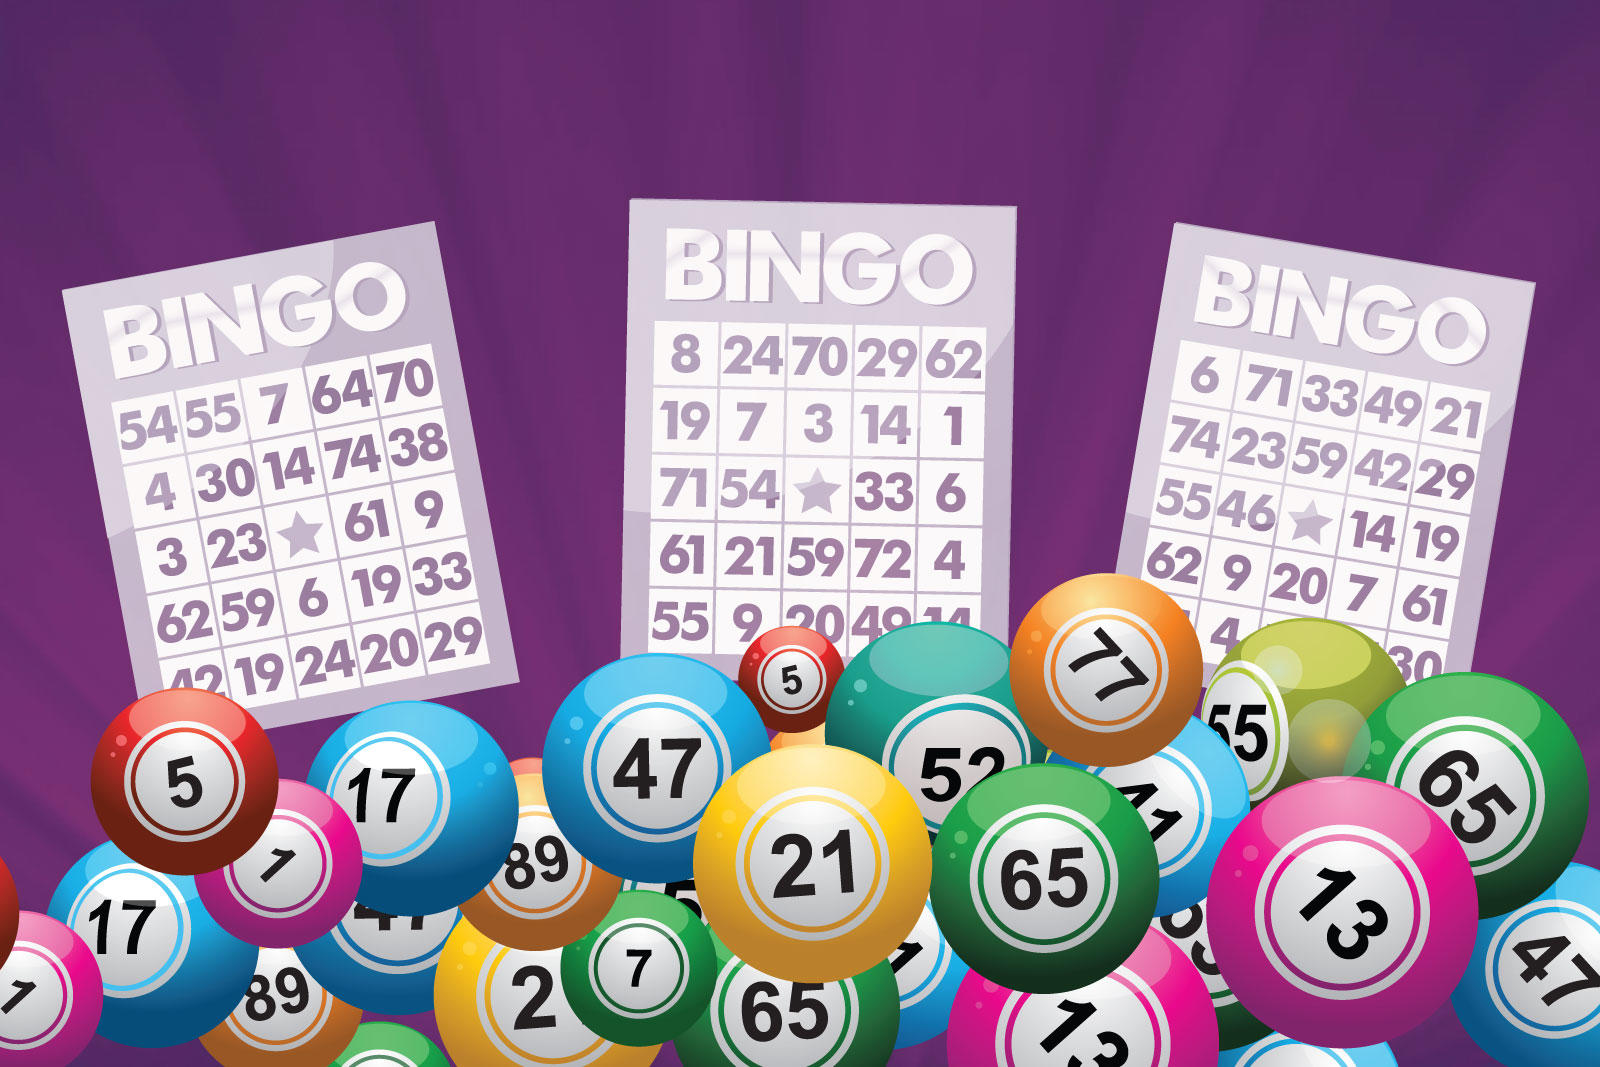 bingo balls and bingo cards